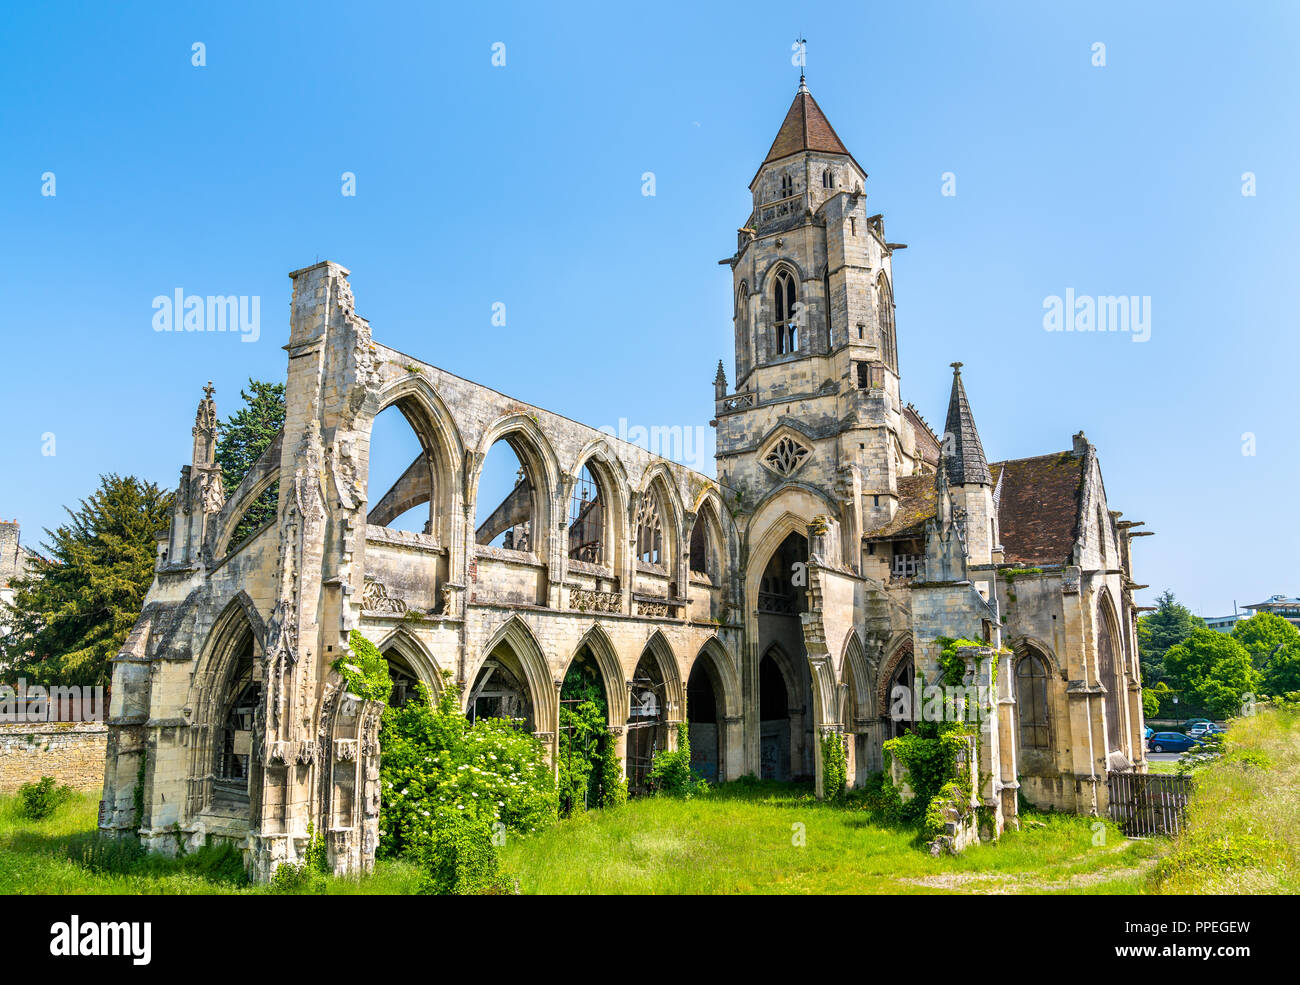 Hotel Saint Etienne Caen Caen Cathedral Normandy France Stock Photos And Caen